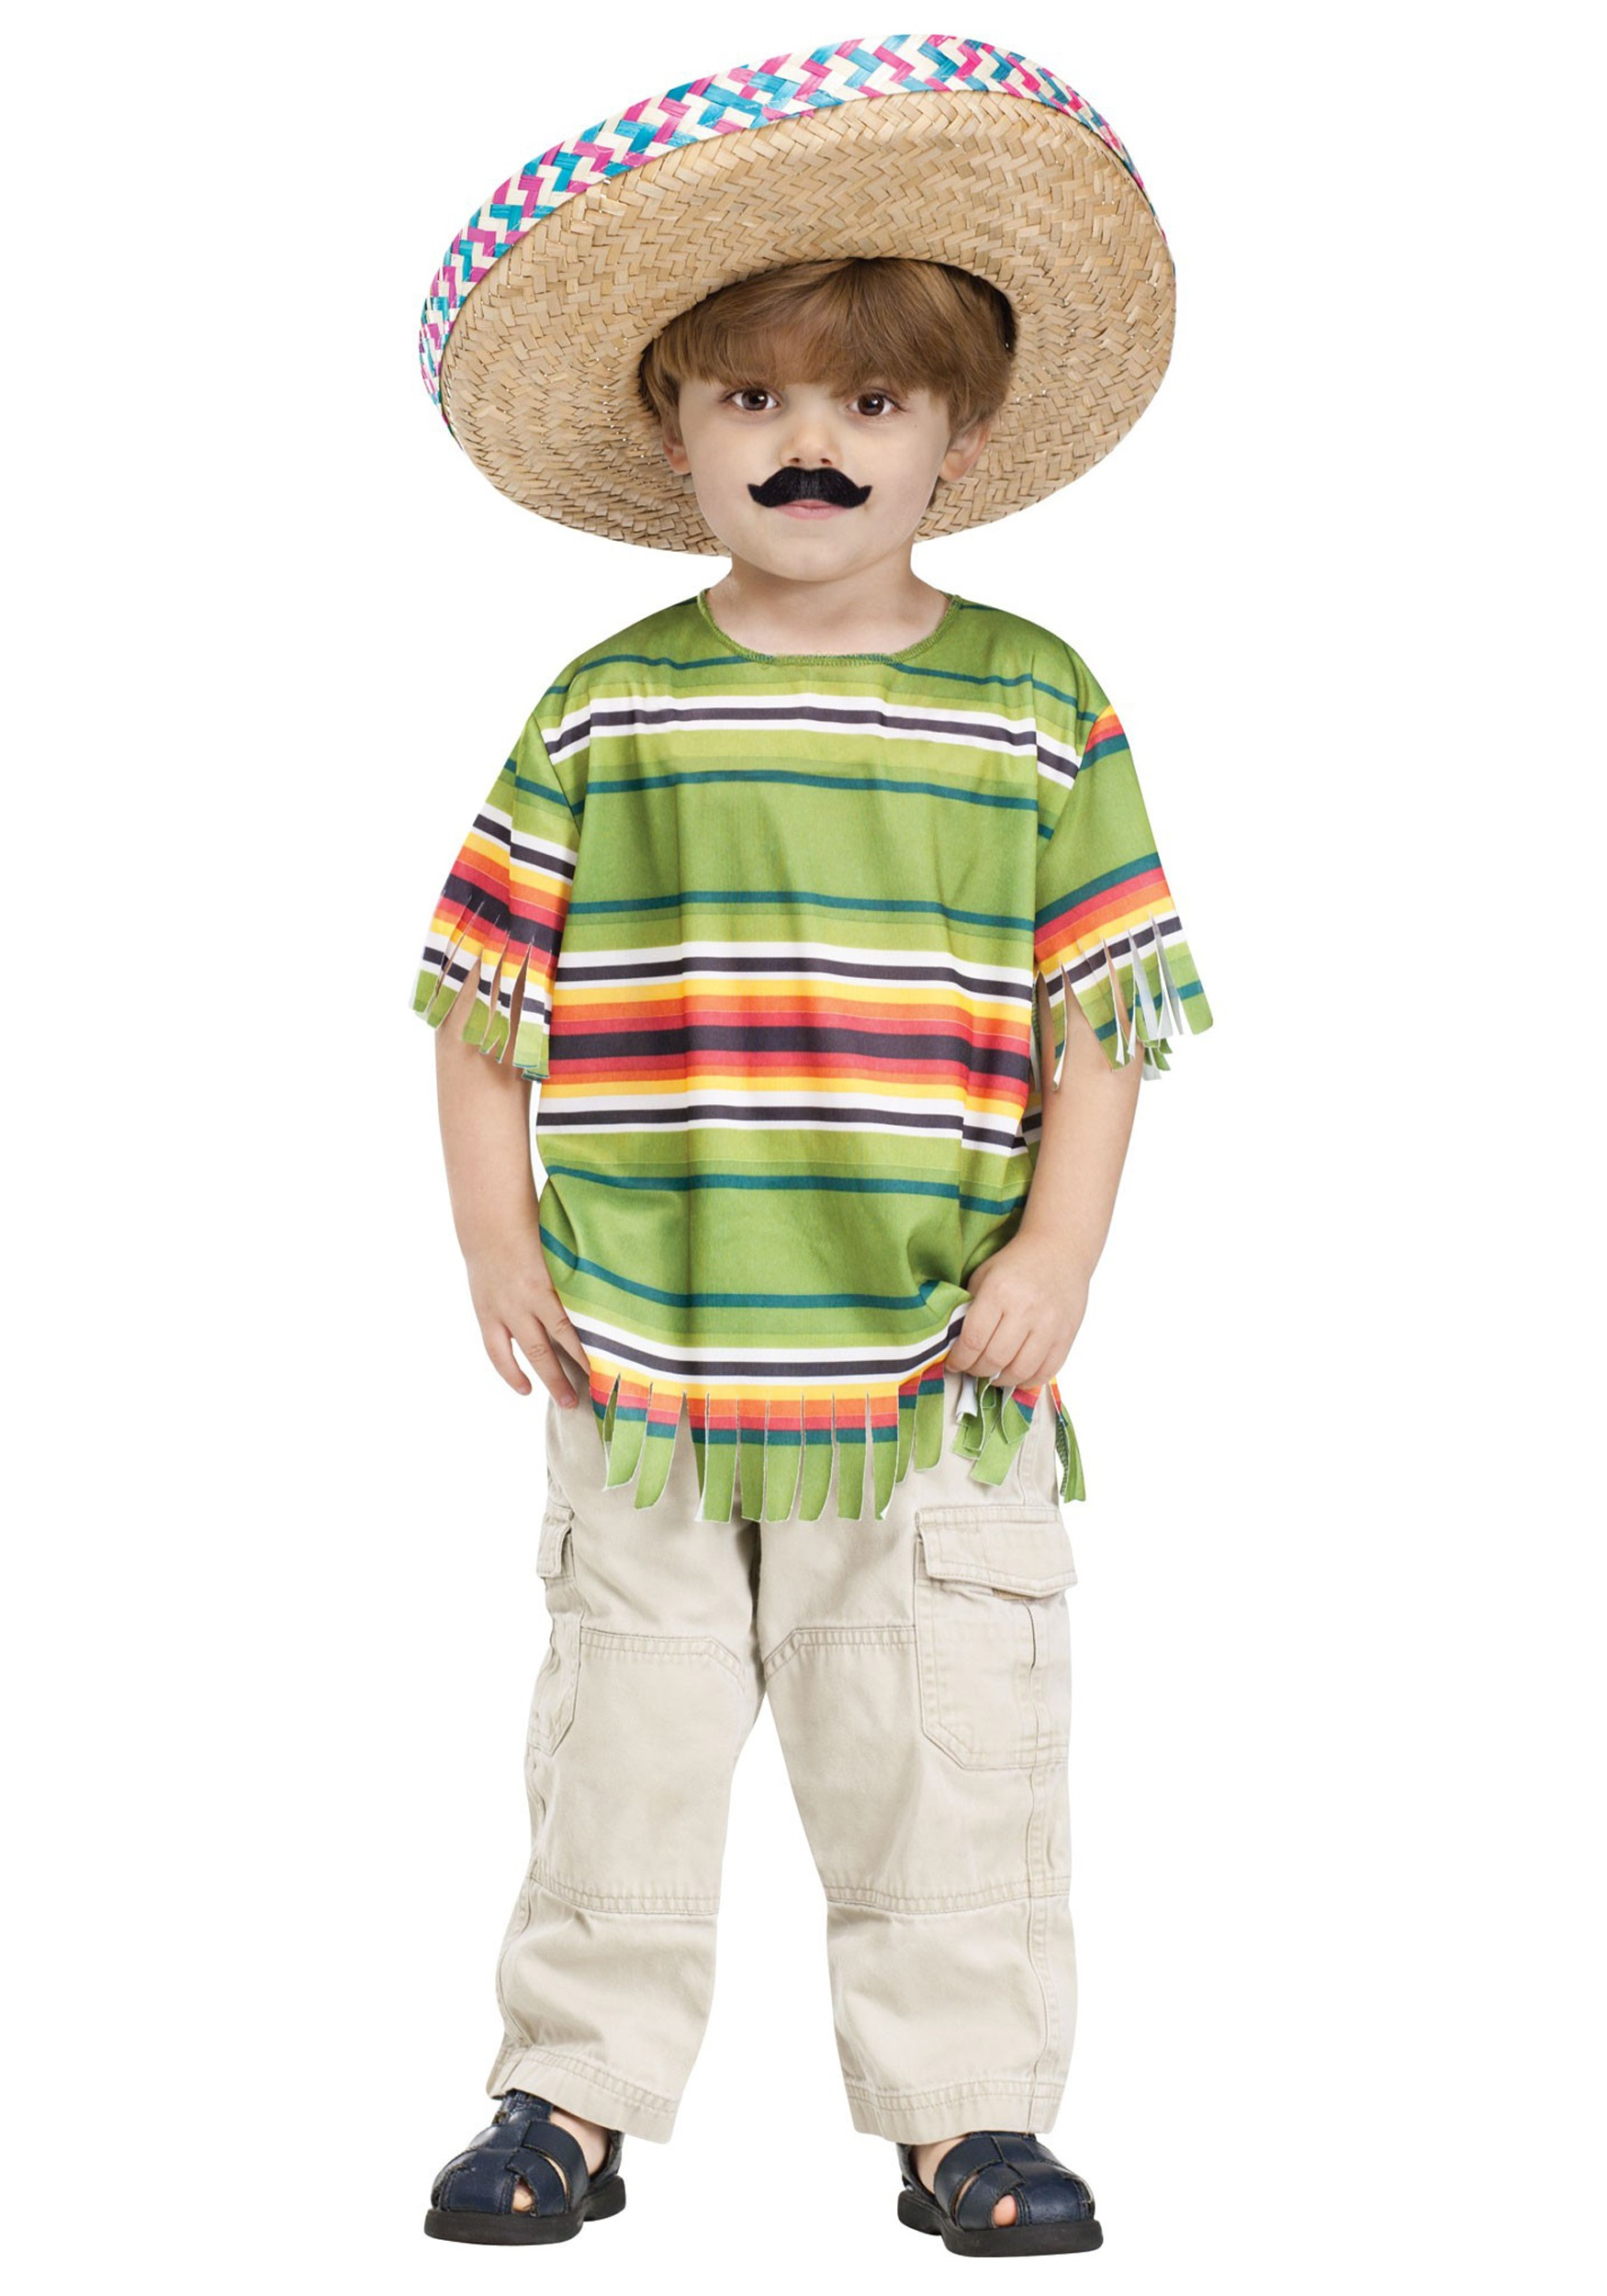 Little Amigo Costume  sc 1 st  Halloween Costumes & Little Amigo Costume - Halloween Costumes